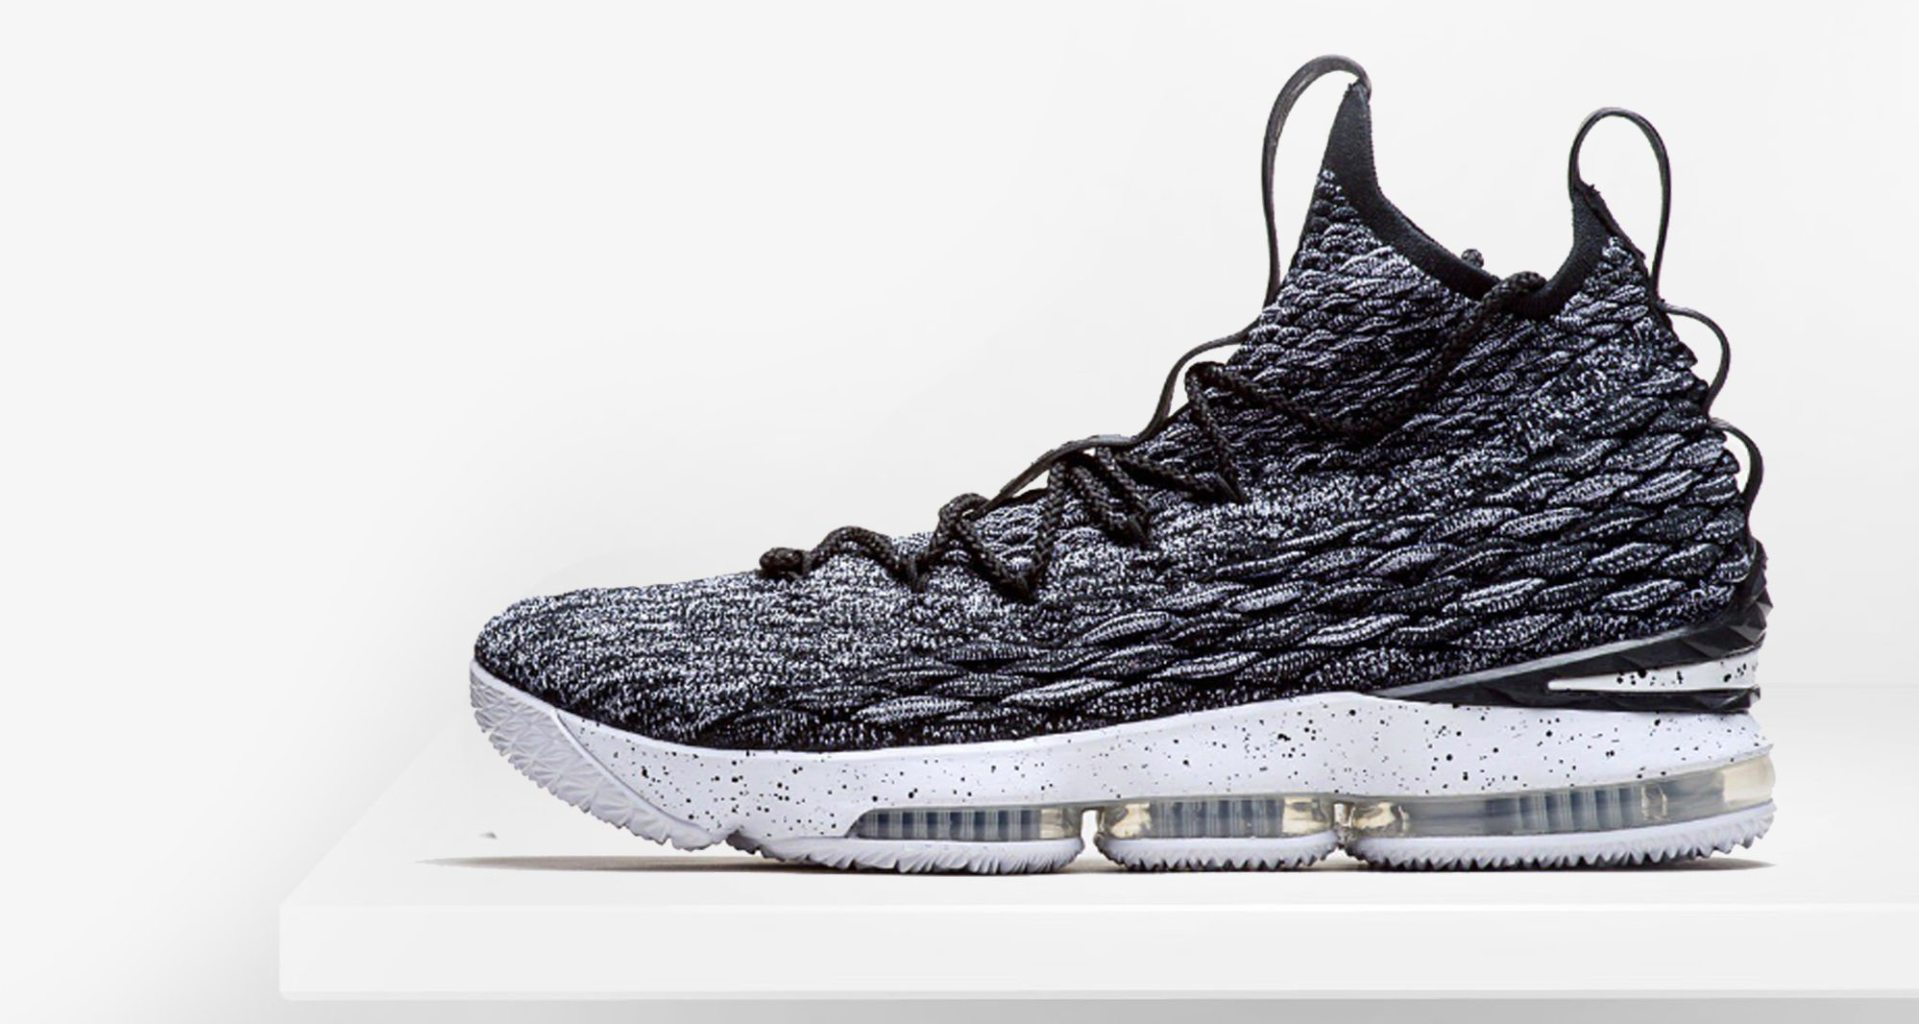 c8da8ba656a Another Look at the Nike LeBron 15